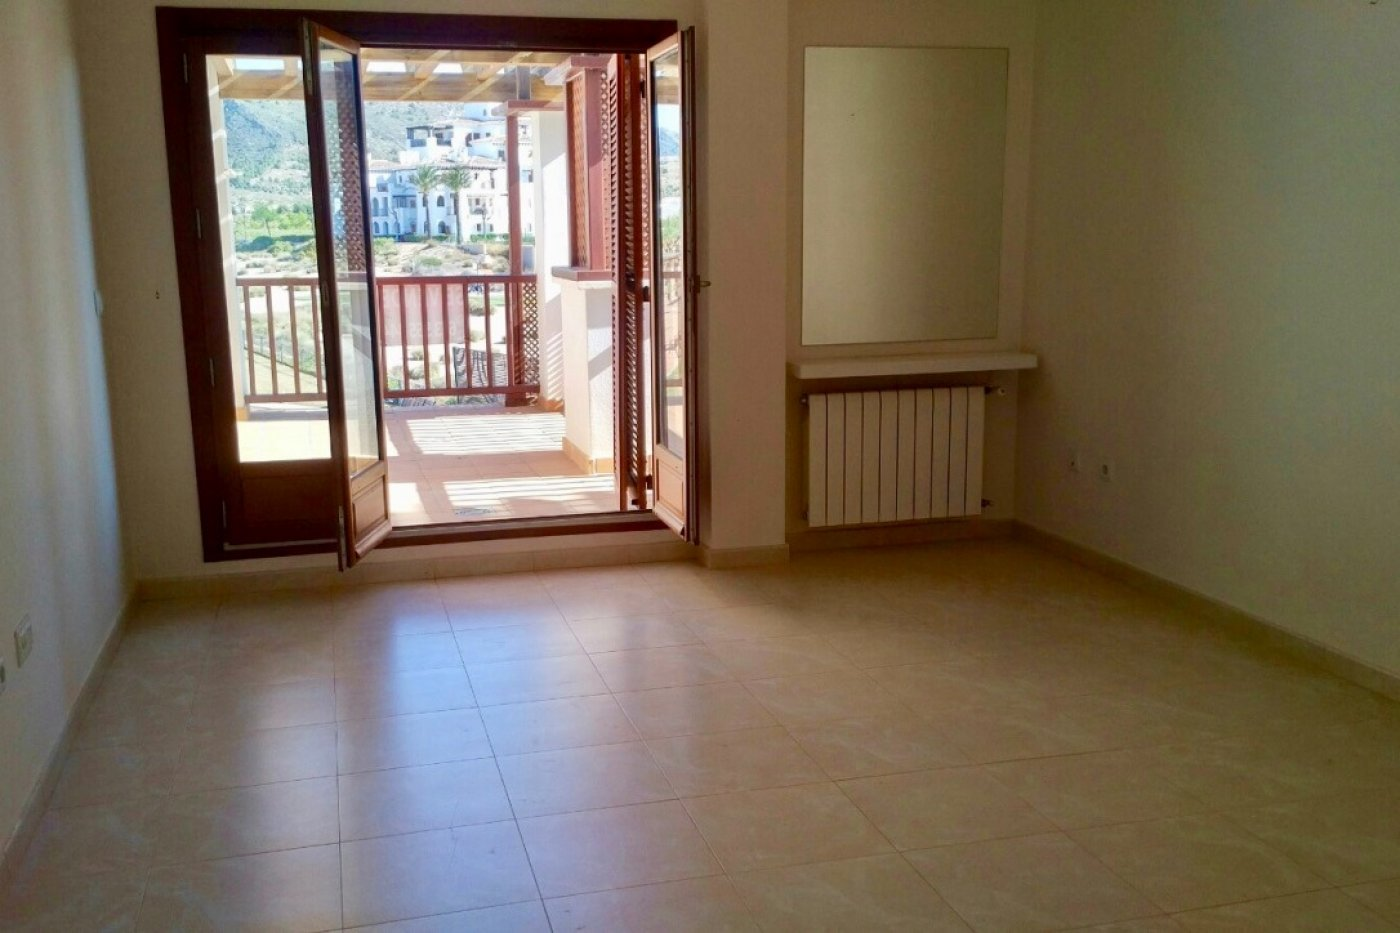 Image 6 Apartment ref 3265-02805 for sale in El Valle Golf Resort Spain - Quality Homes Costa Cálida